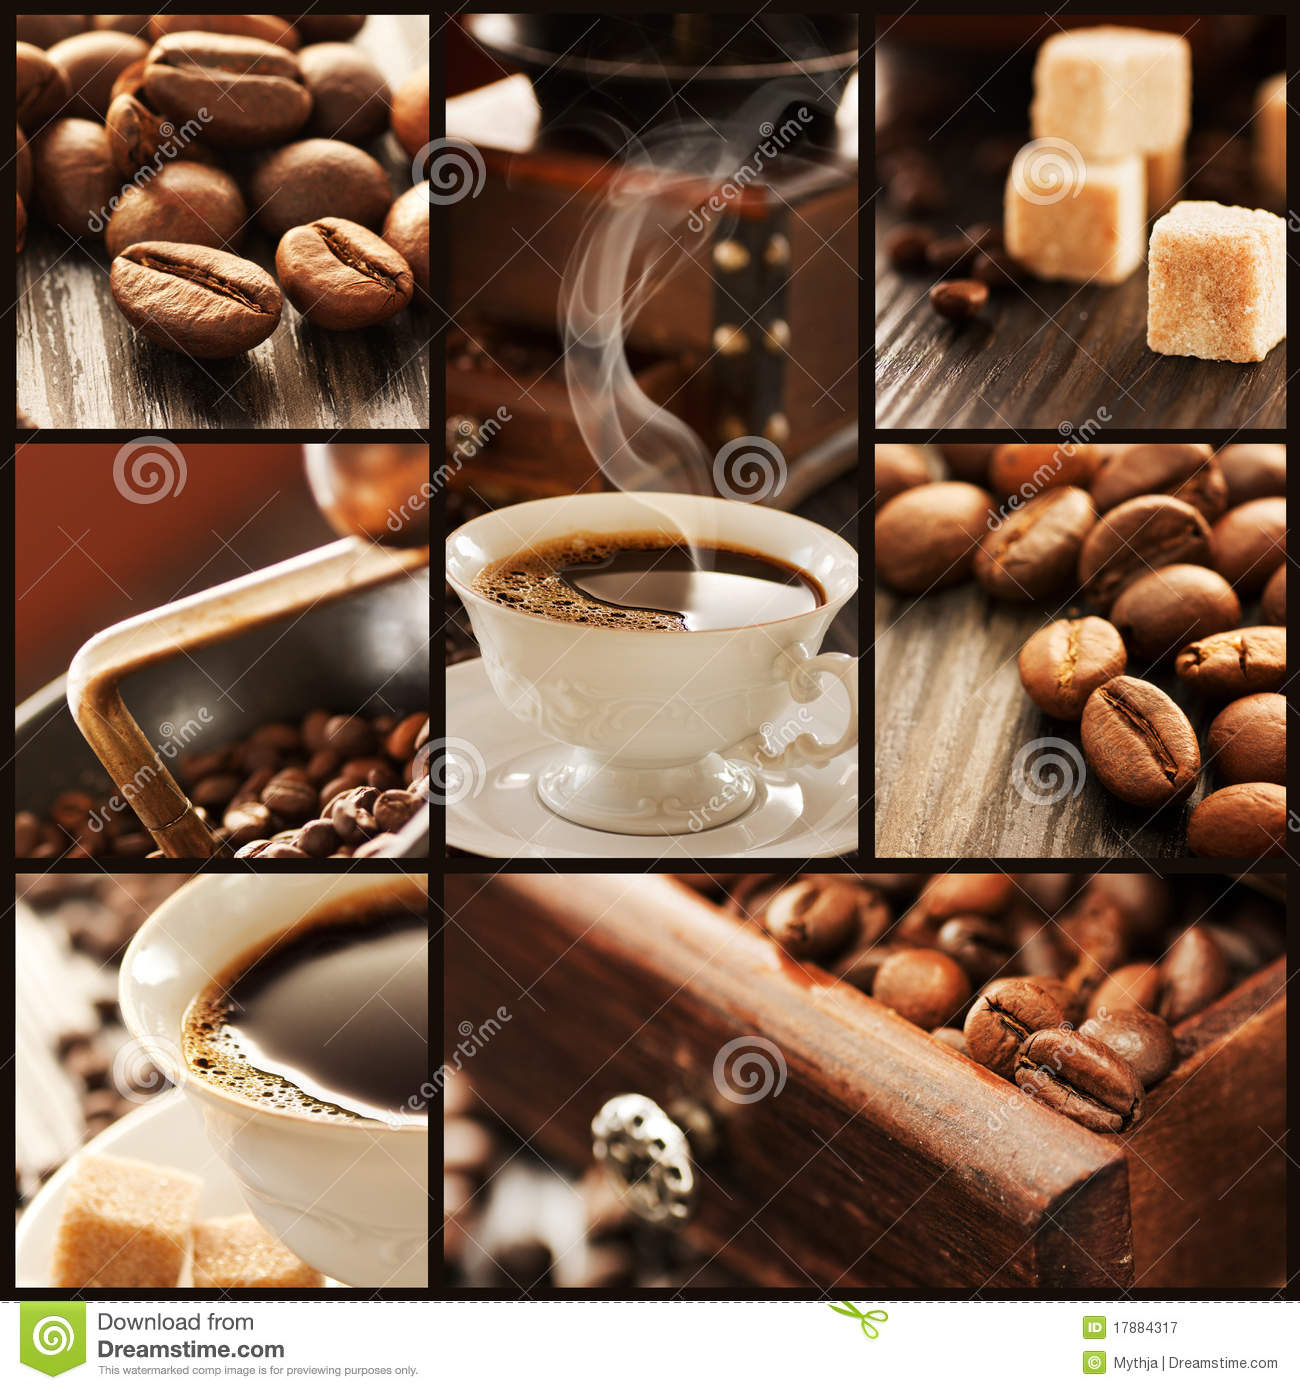 Collage of coffee details.